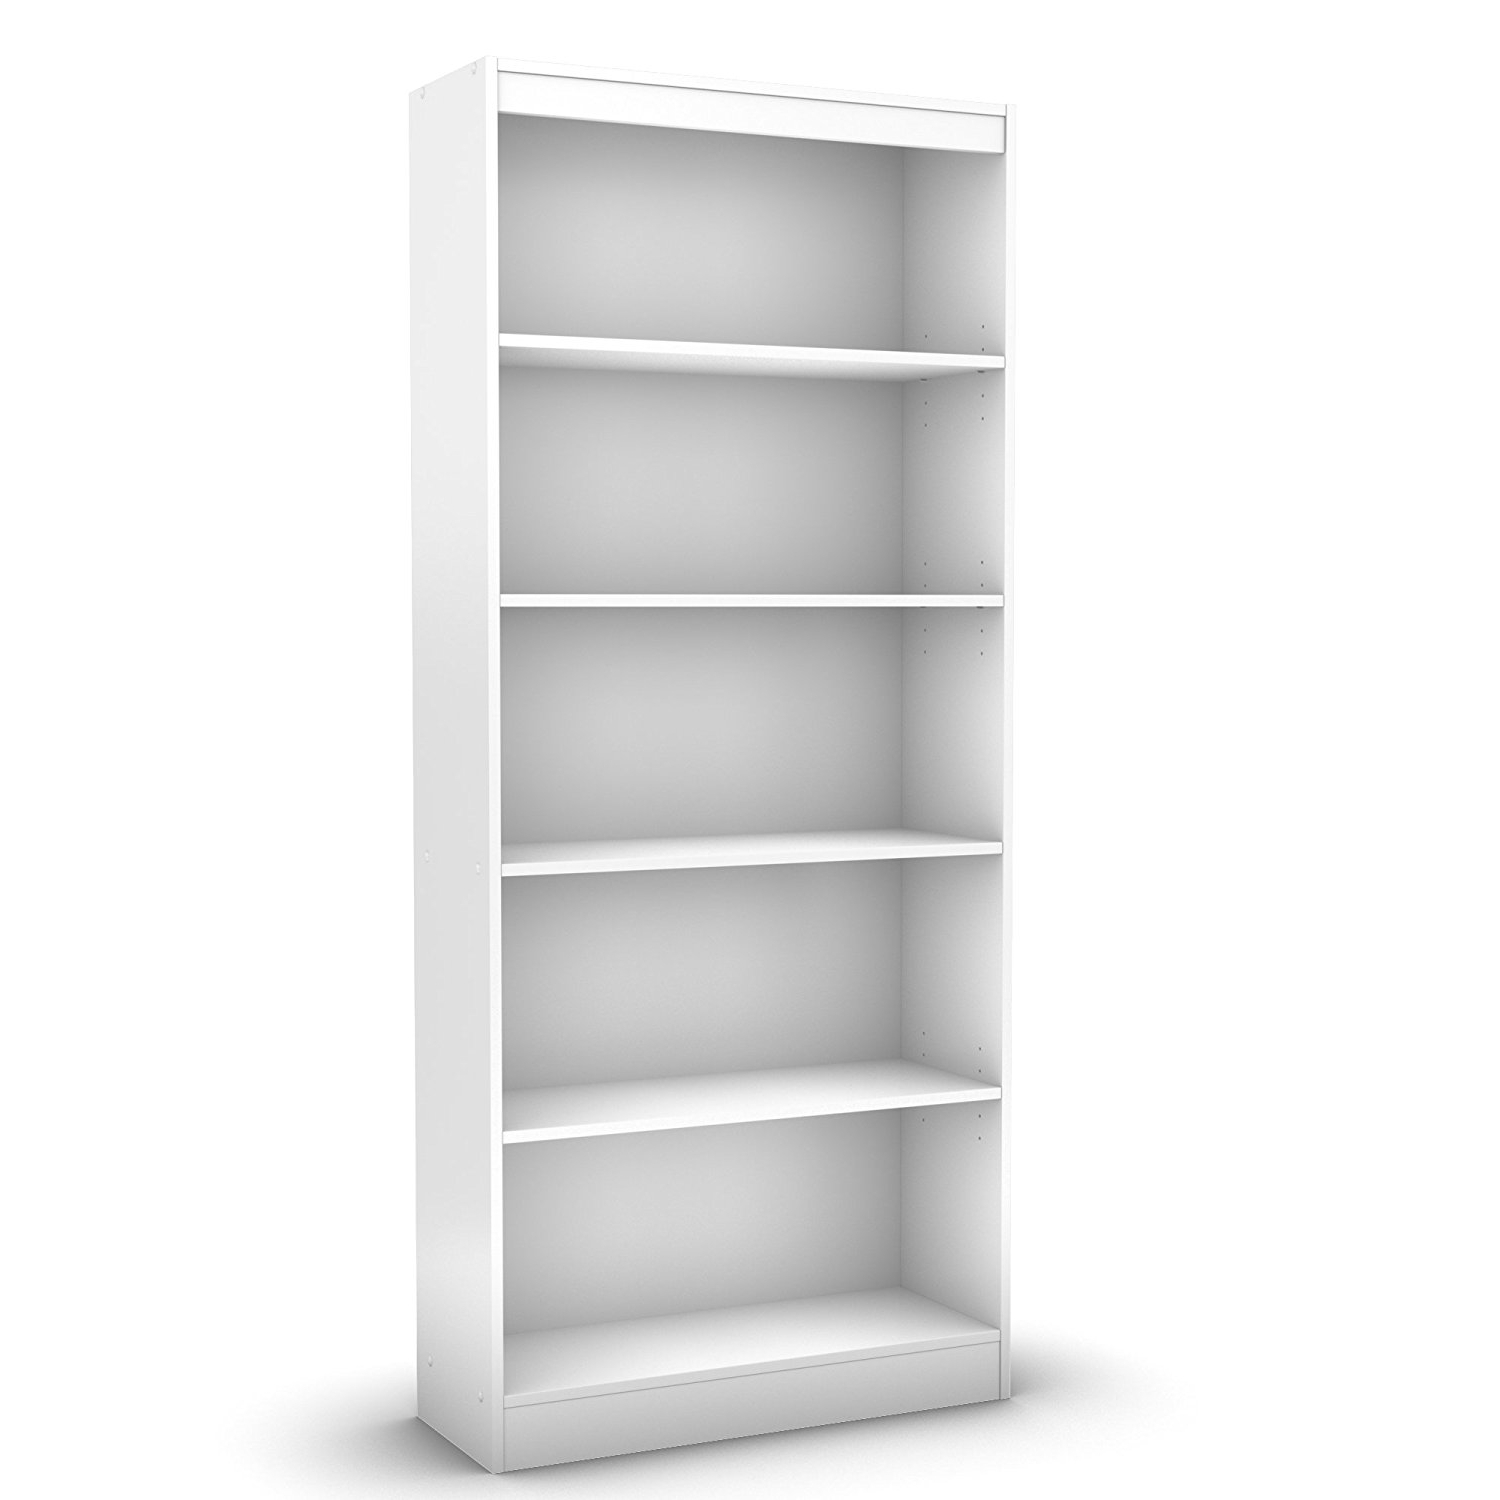 Fashionable South Shore 5 Shelf Bookcases In Amazon: South Shore Axess  Collection 5 Shelf Bookcase